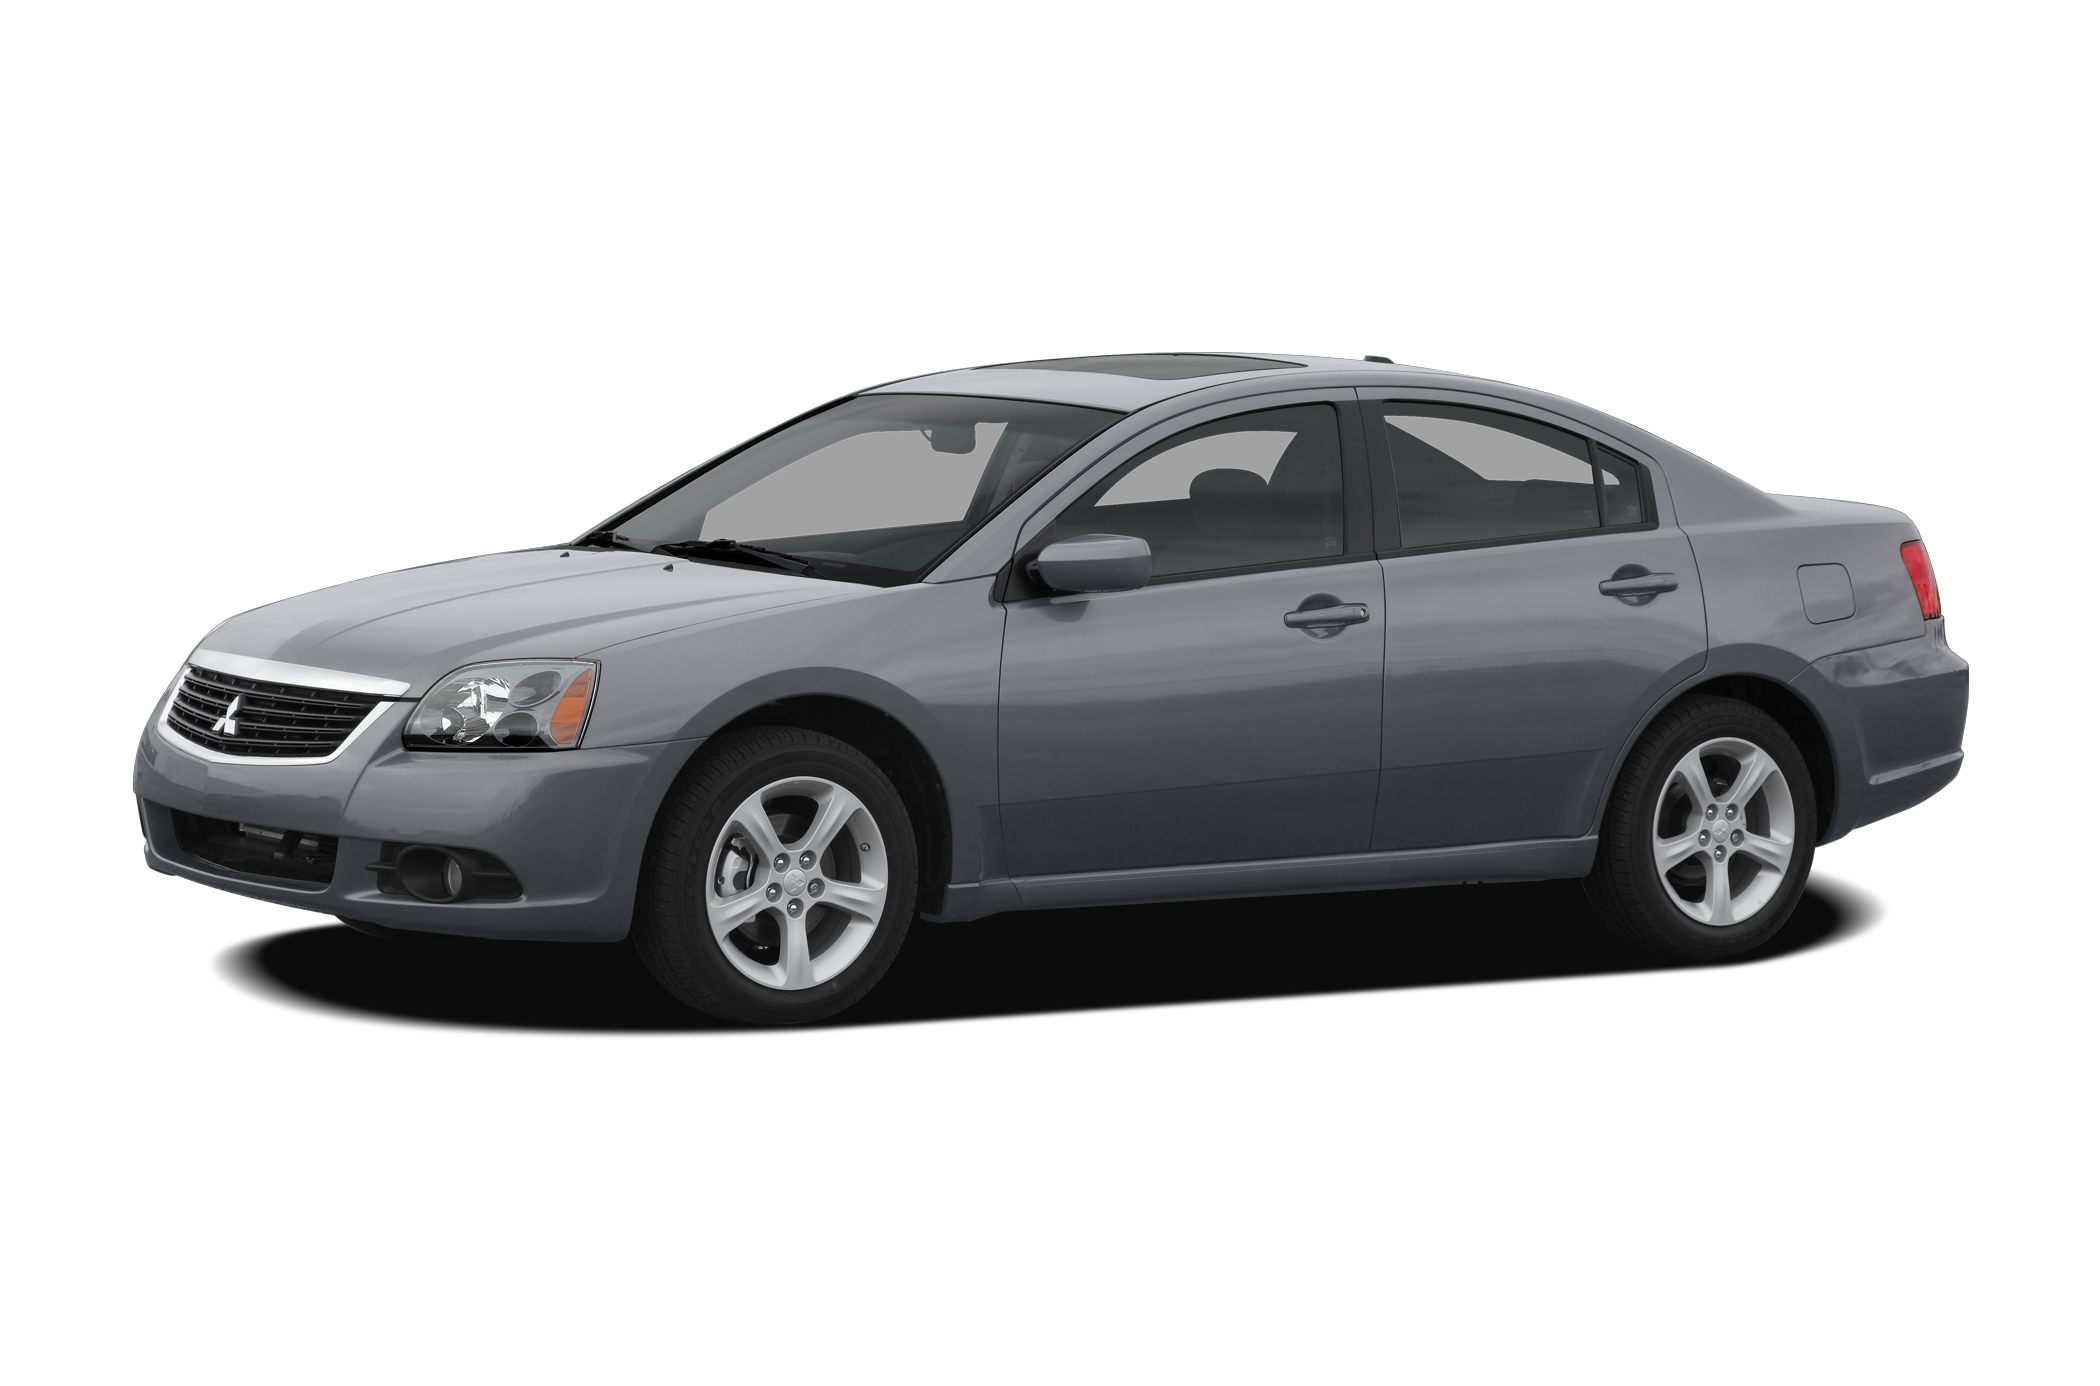 2011 Mitsubishi Galant SE Sedan for sale in Downingtown for $13,995 with 20,406 miles